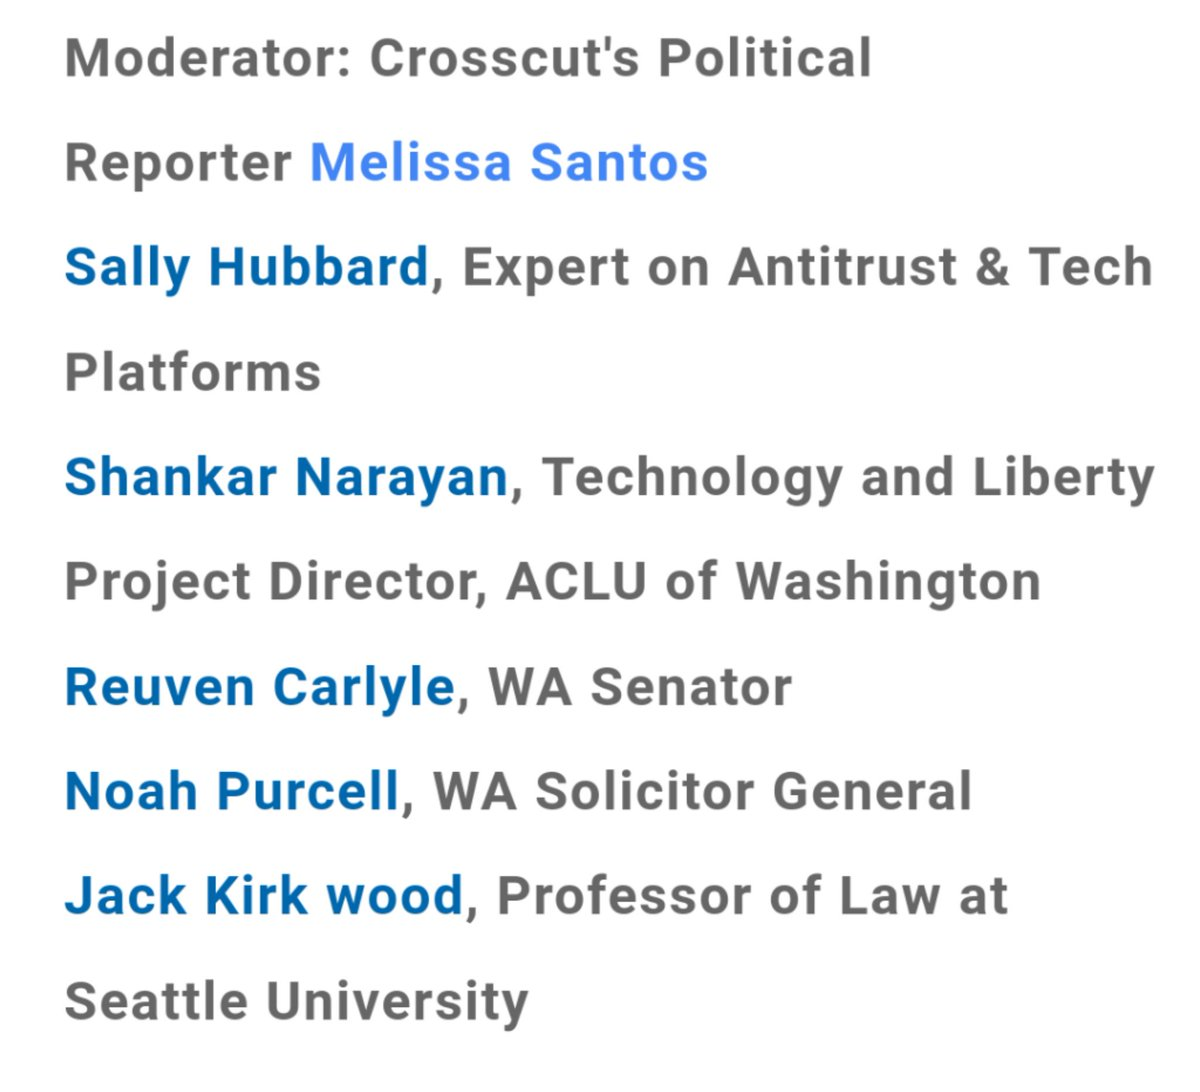 Monica Nickelsburg On Twitter From Crosscut S News Brews Event Where These Folks Will Dig Into The Privacy Bill Working Its Way Through The Washington State Legislature Https T Co Nspwusivju Washington, d.c., is one of the most important capital cities in the world. twitter